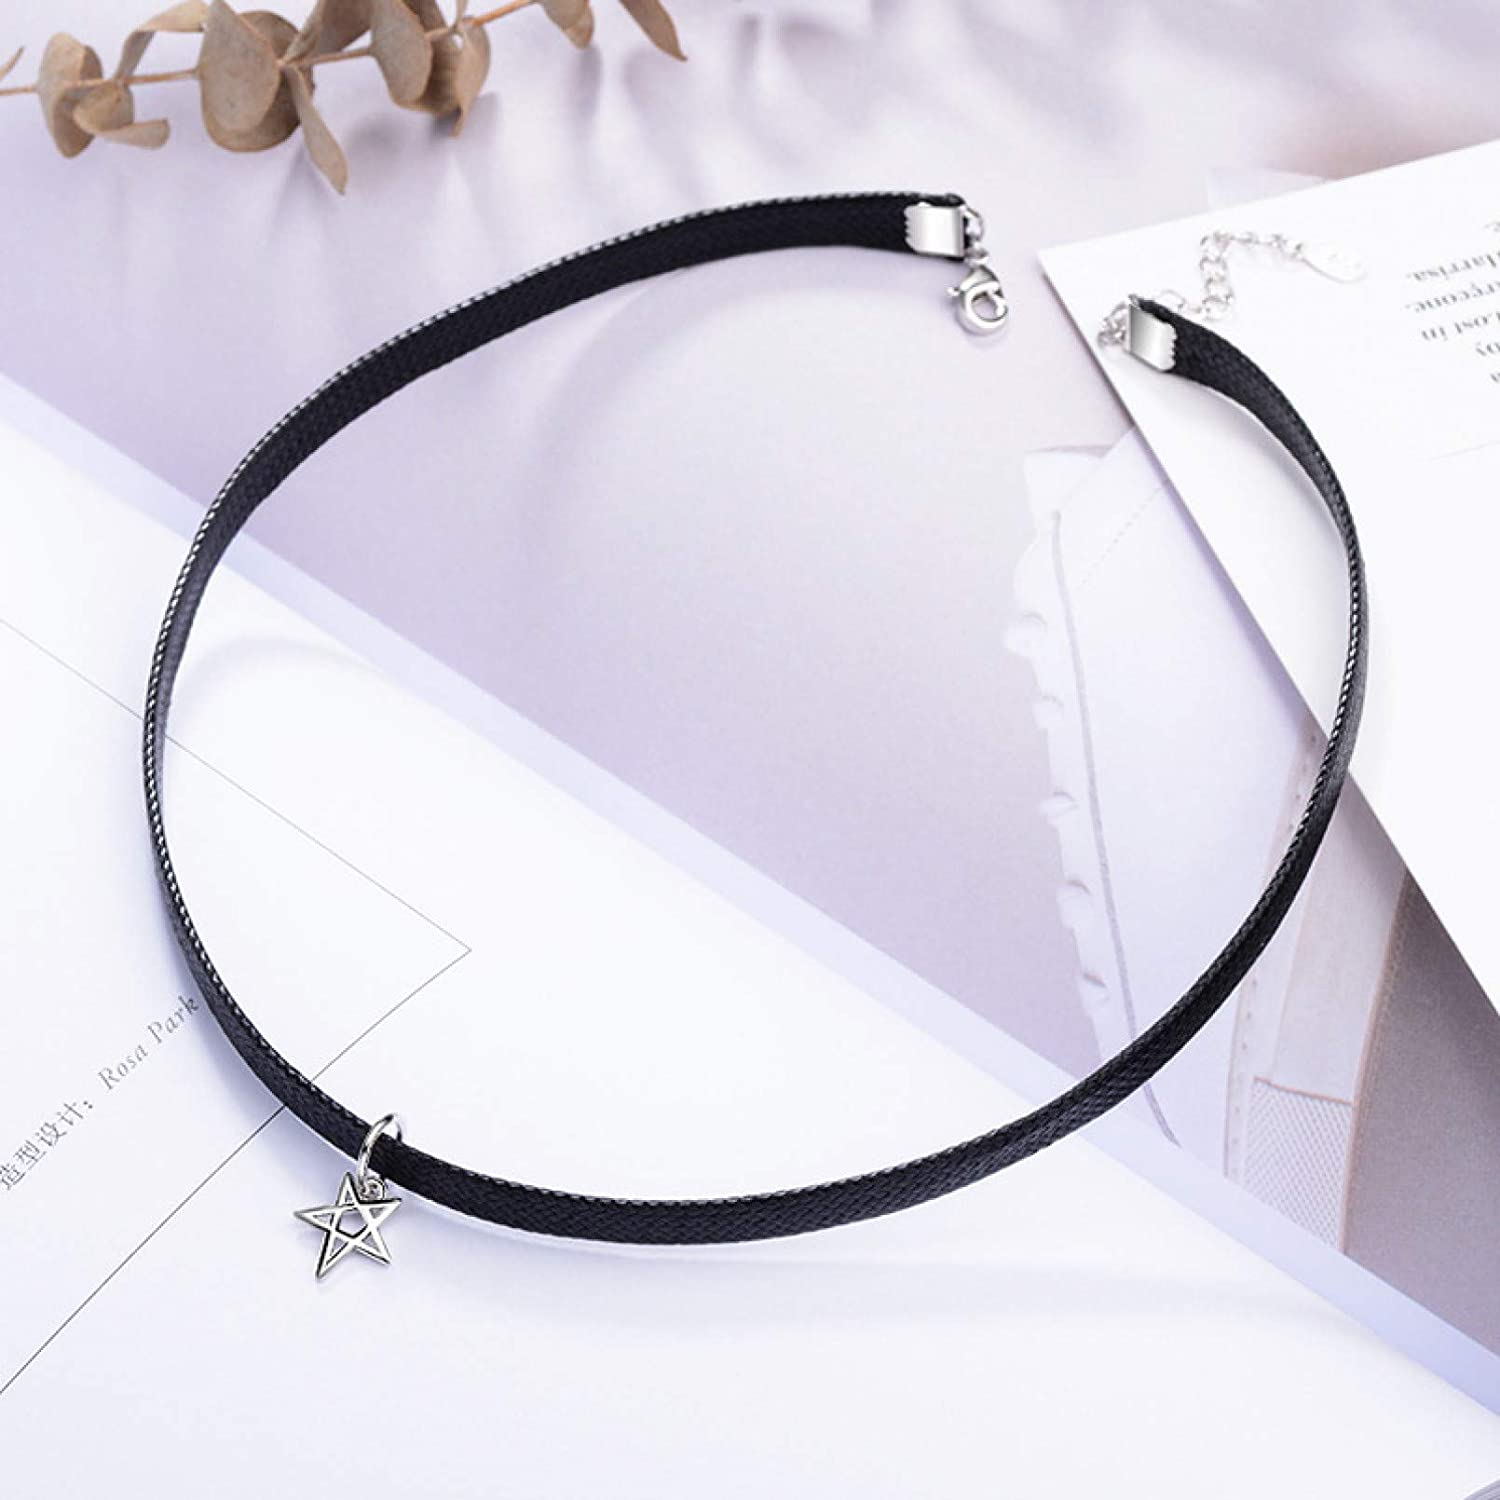 N/A Necklace Pendant Female Five-Pointed Star Black Rope Collar Necklace Clavicle Chain Simple and Versatile Neckband Christmas Birthday Party Gifts